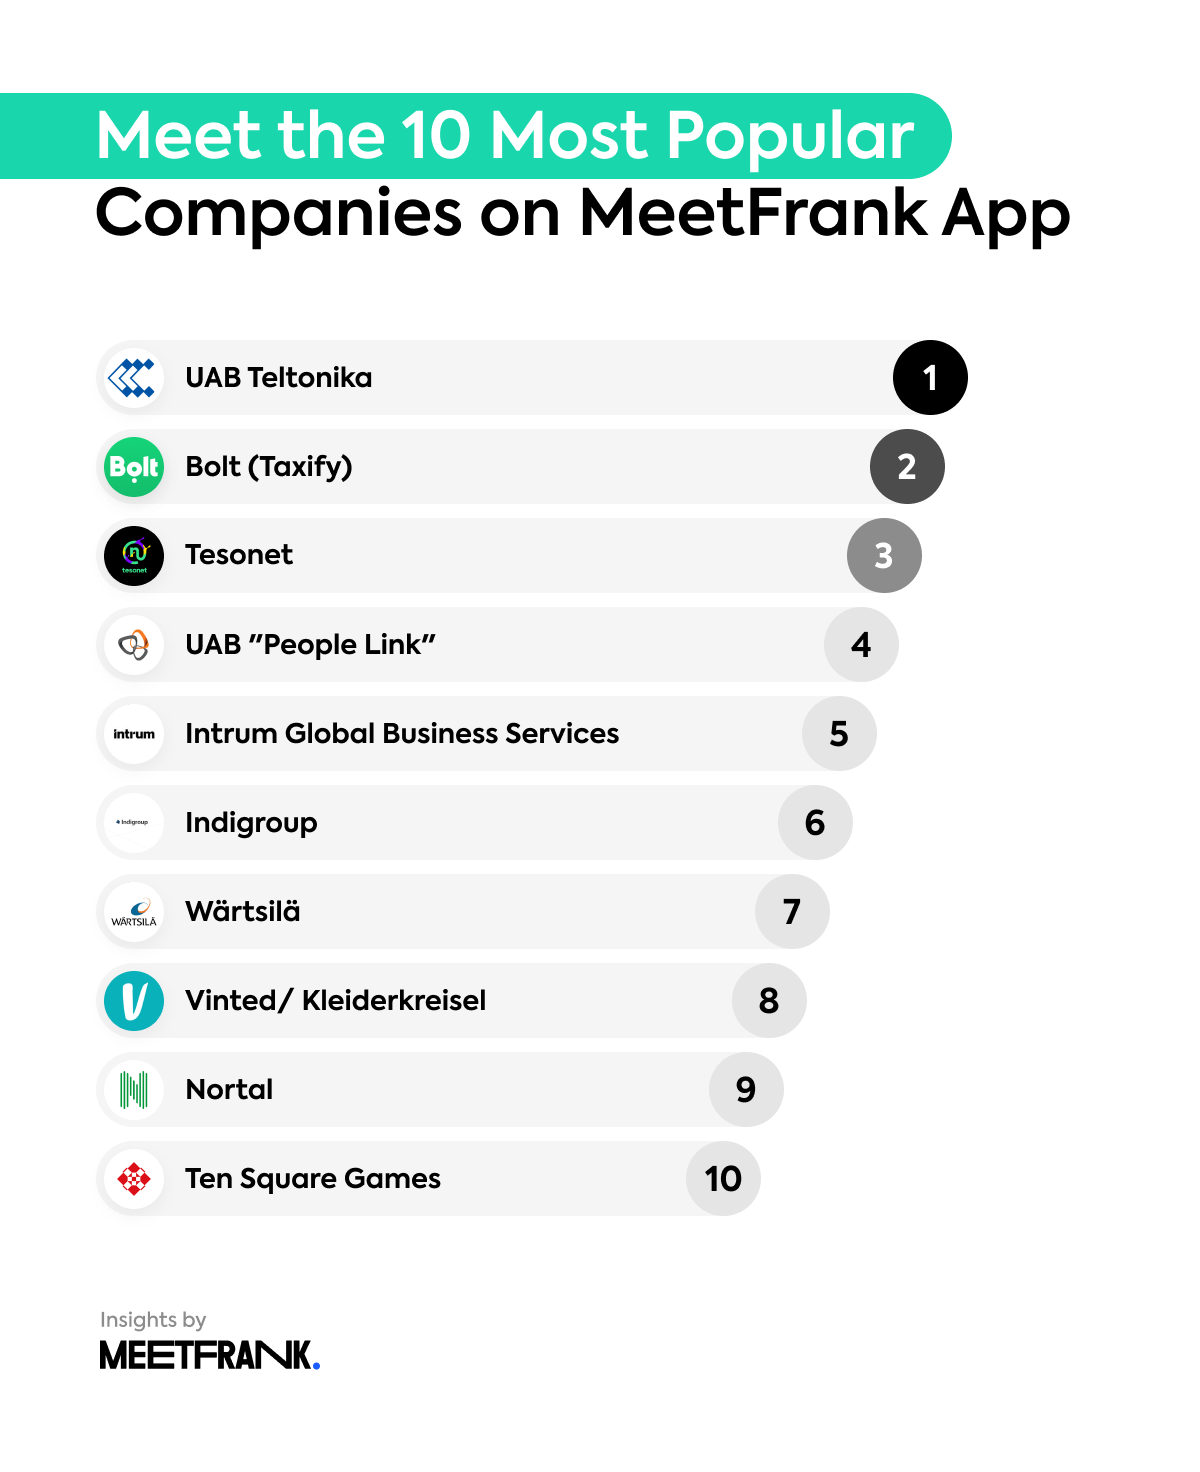 top 10 companies with the most job offers on MeetFrank in September 2020